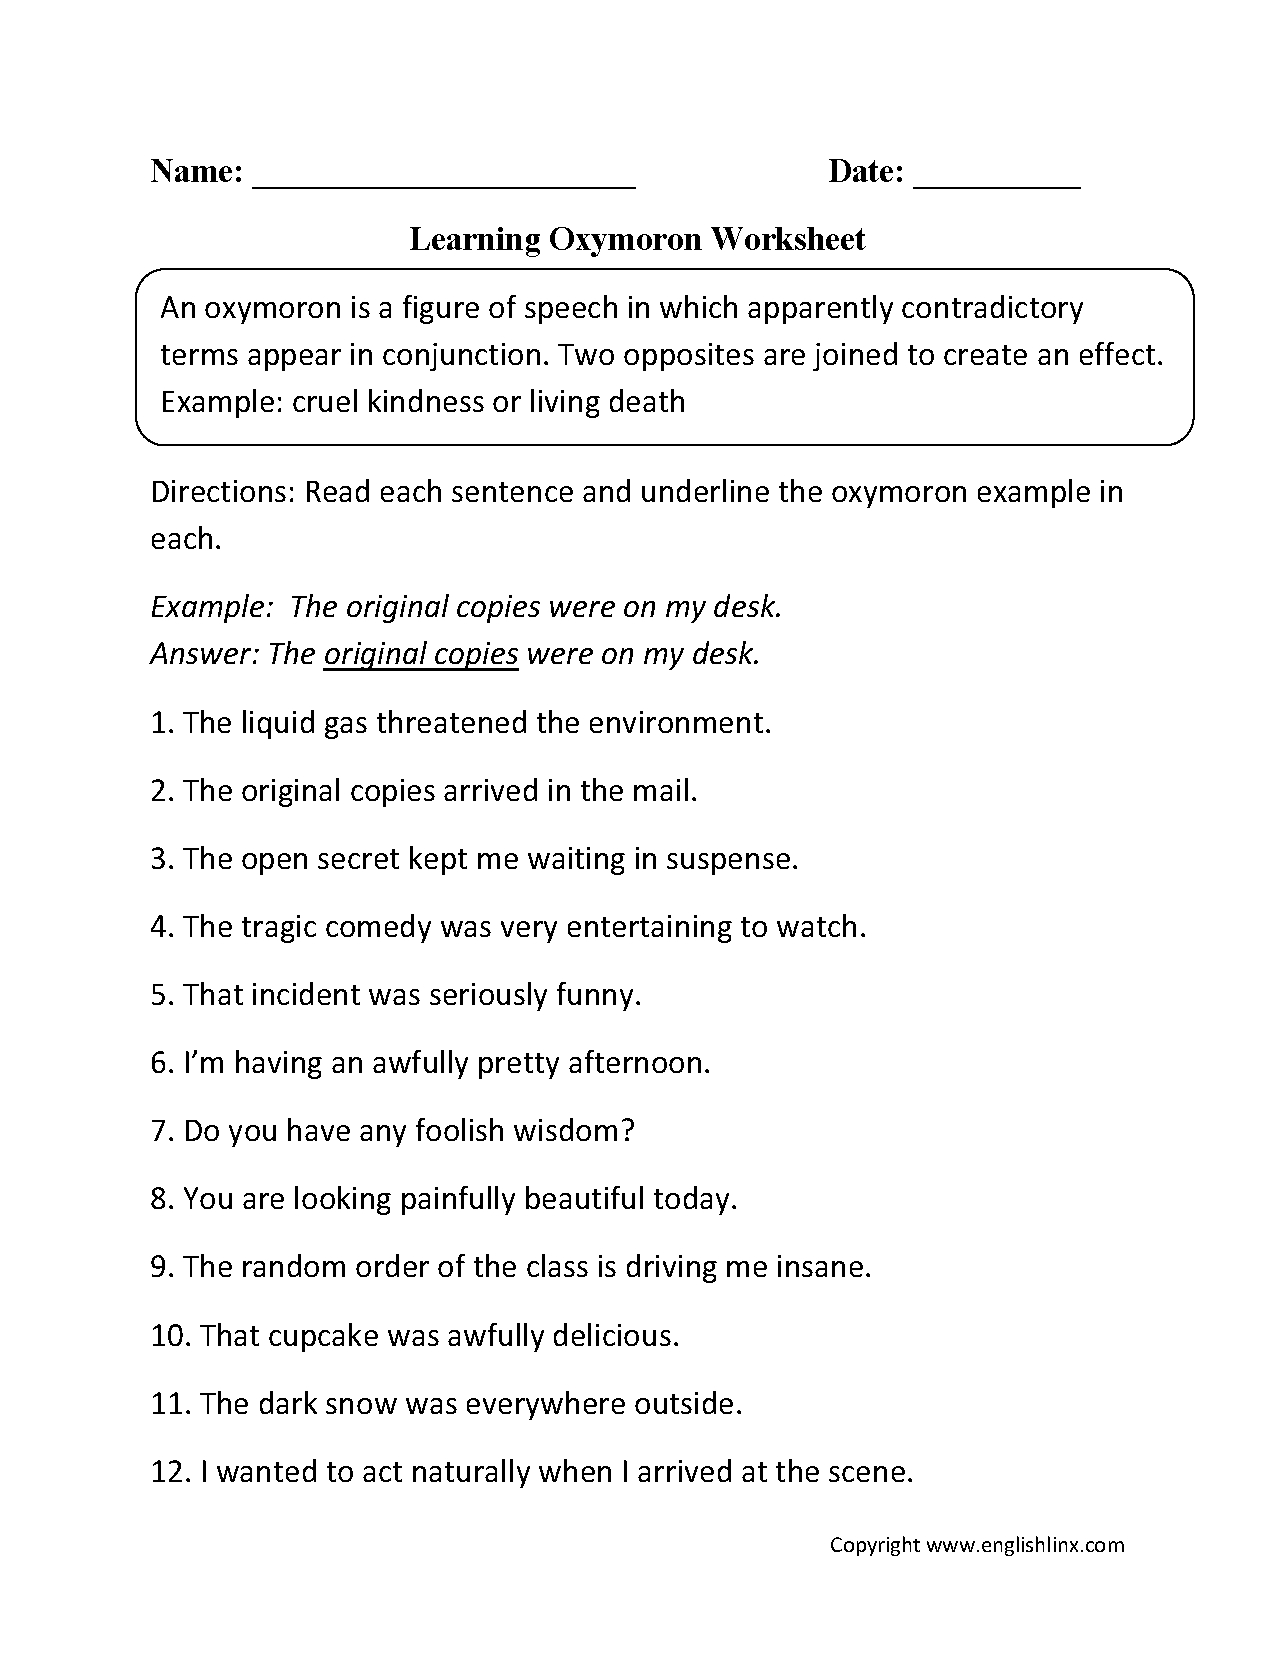 Worksheets Personification Worksheets content by subject worksheets figurative language worksheets